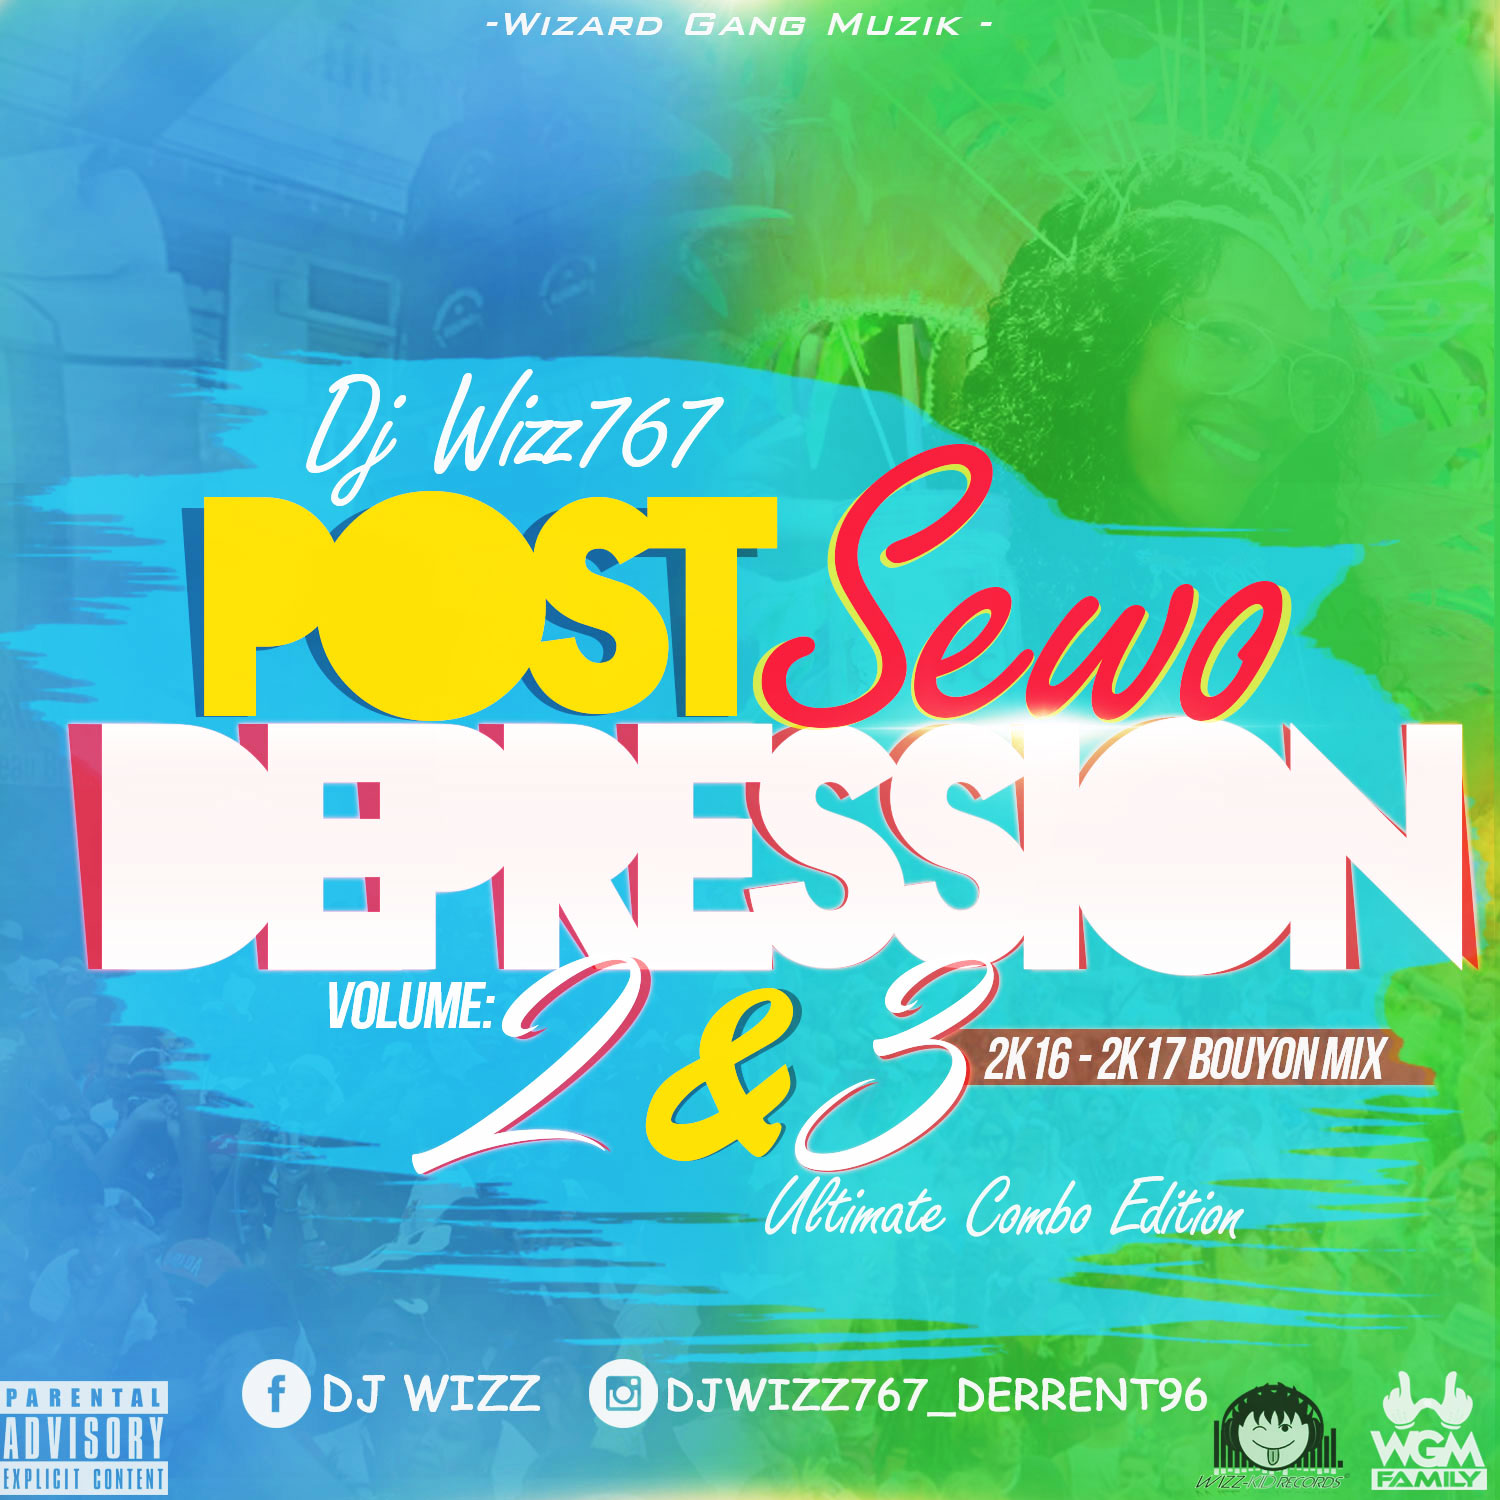 Dj Wizz767 – Post Sewo Depression (PSD) Vol. 2&3 (2017 Bouyon Mix |Combo Edition)